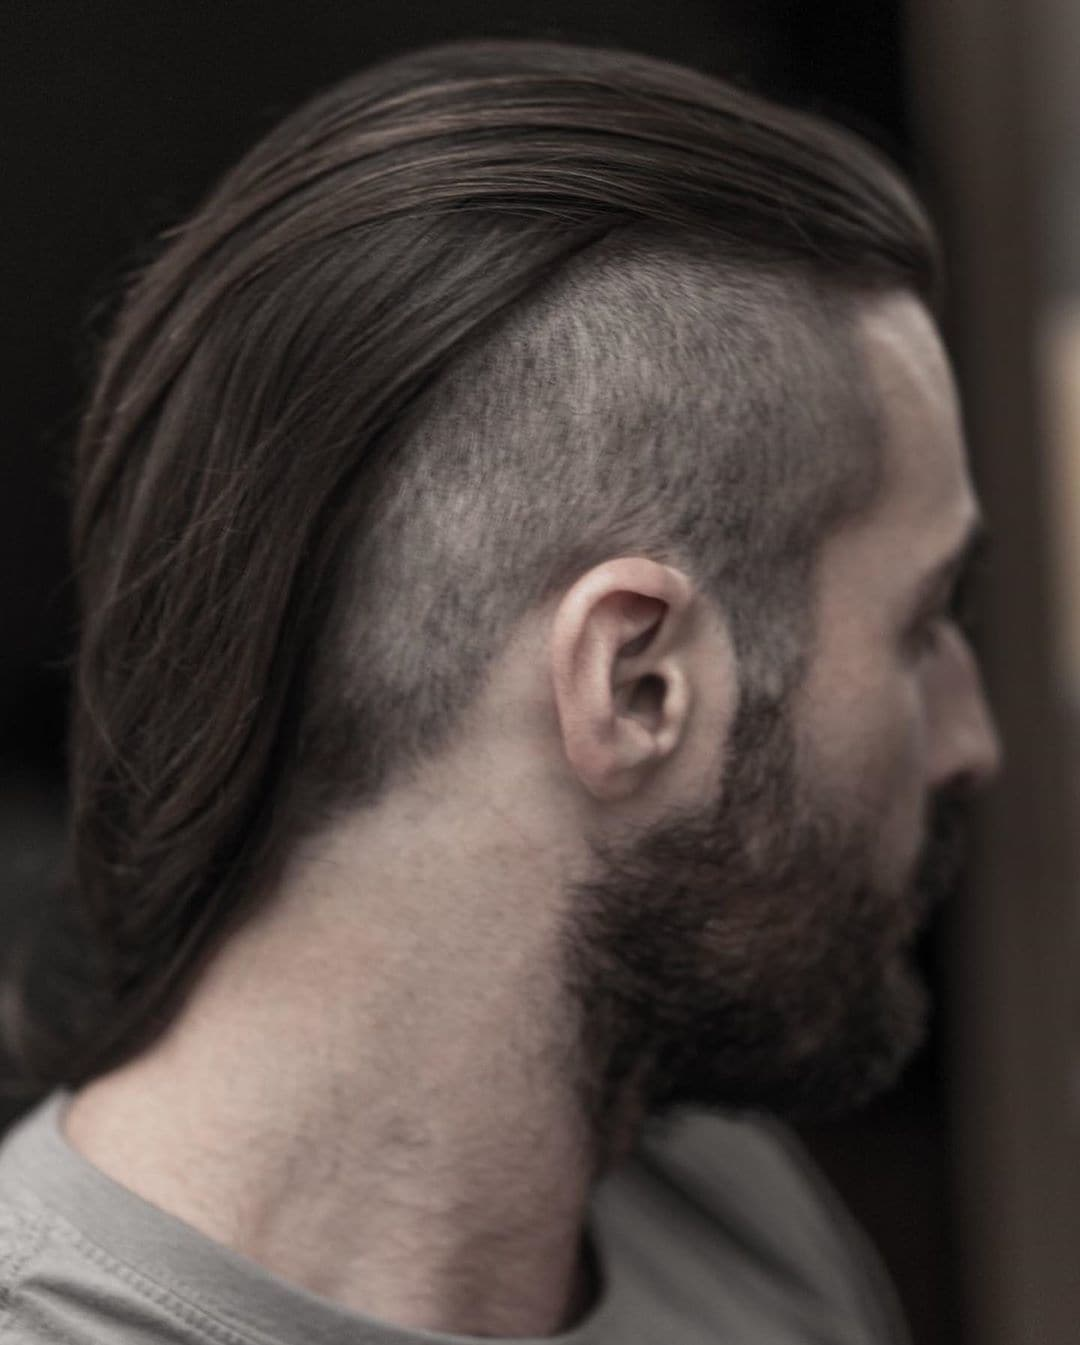 The undercut has become a mainstay in edgy haircuts. 29 Popular Undercut Long Hair Looks For Men 2020 Guide